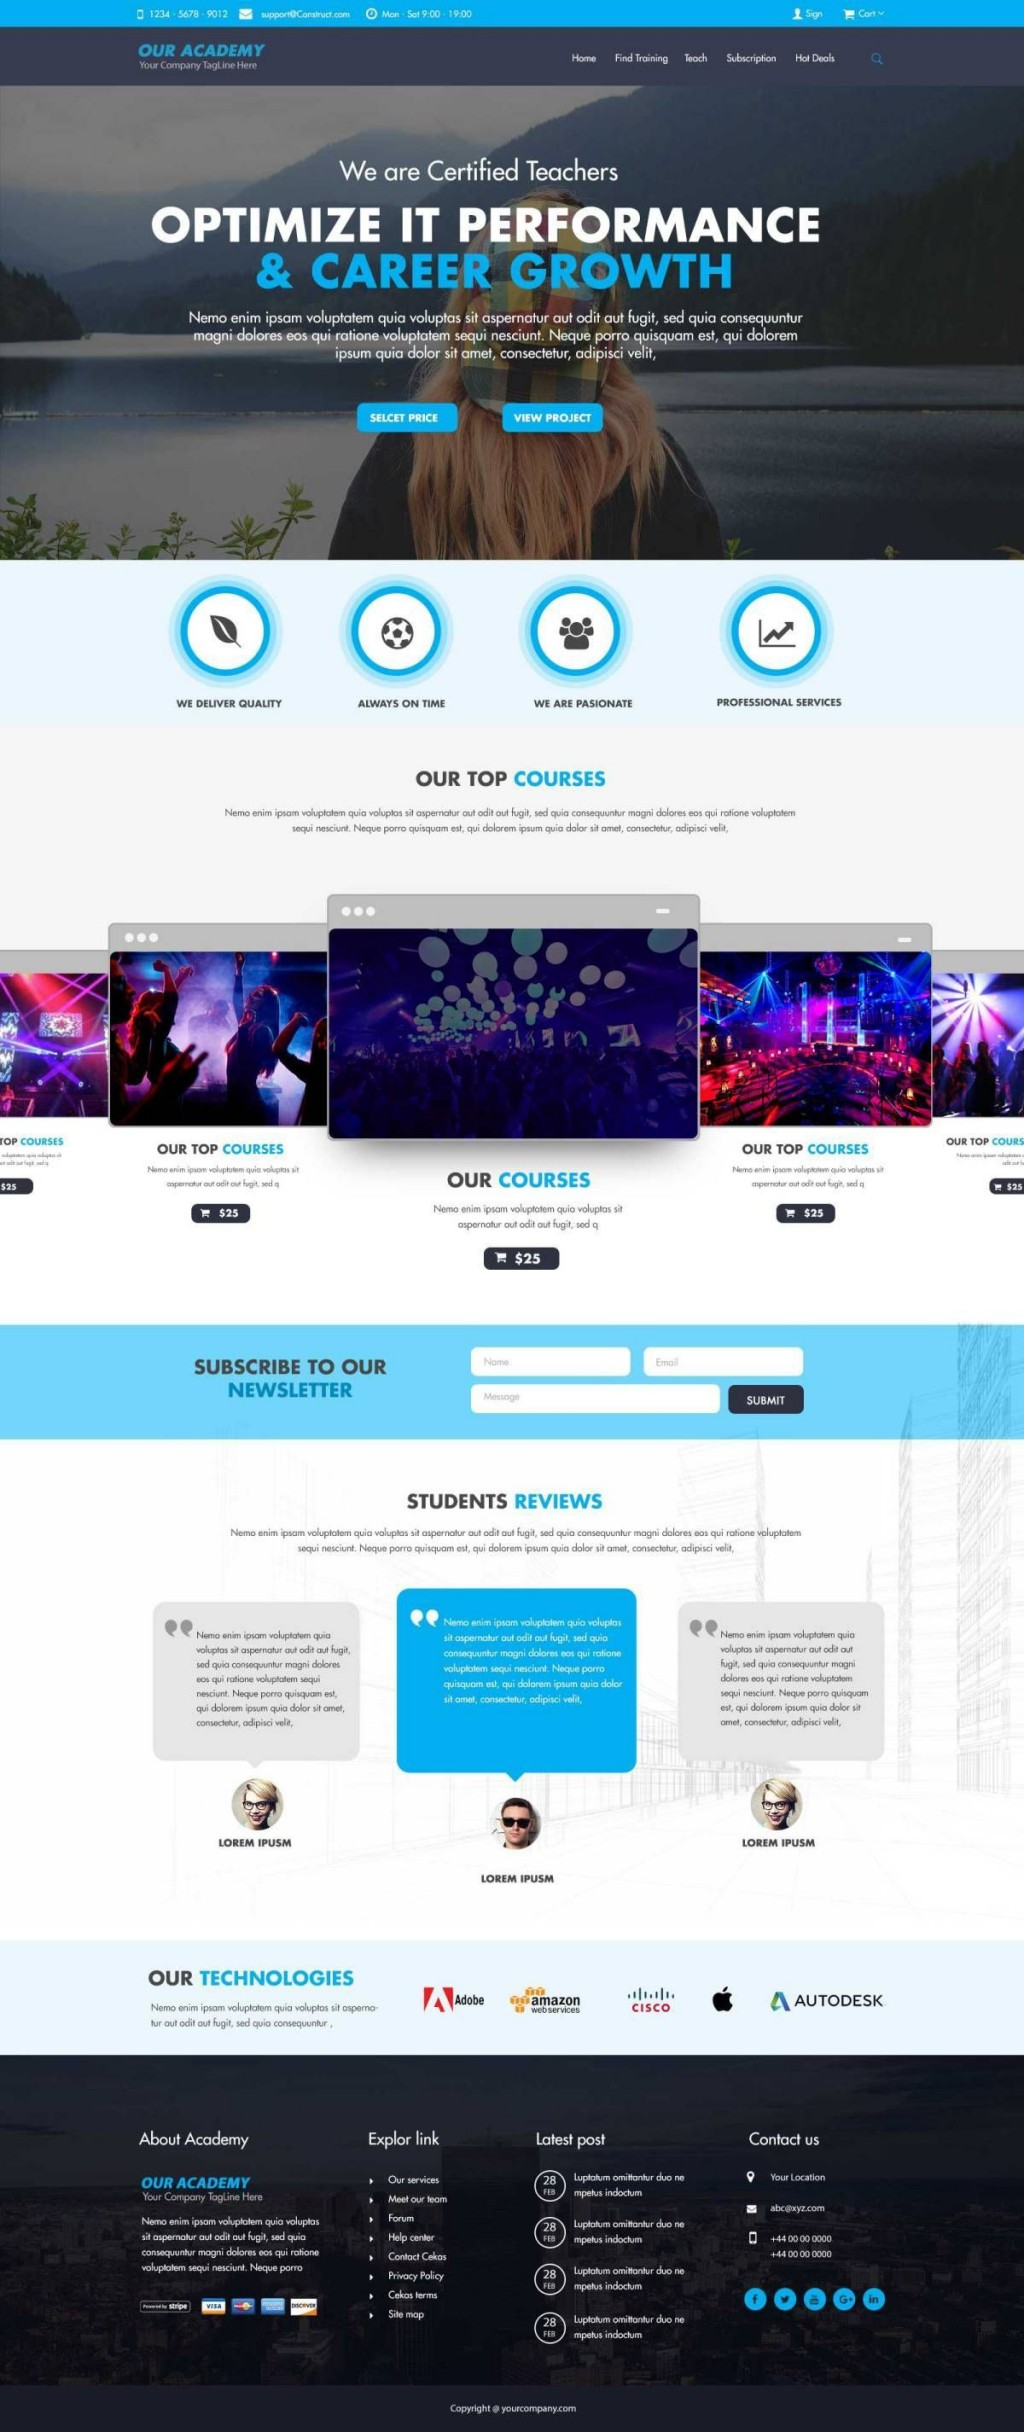 007 Amazing Website Template Free Download Picture  Online Shopping Colorlib New Wordpres Html5 For BusinesLarge